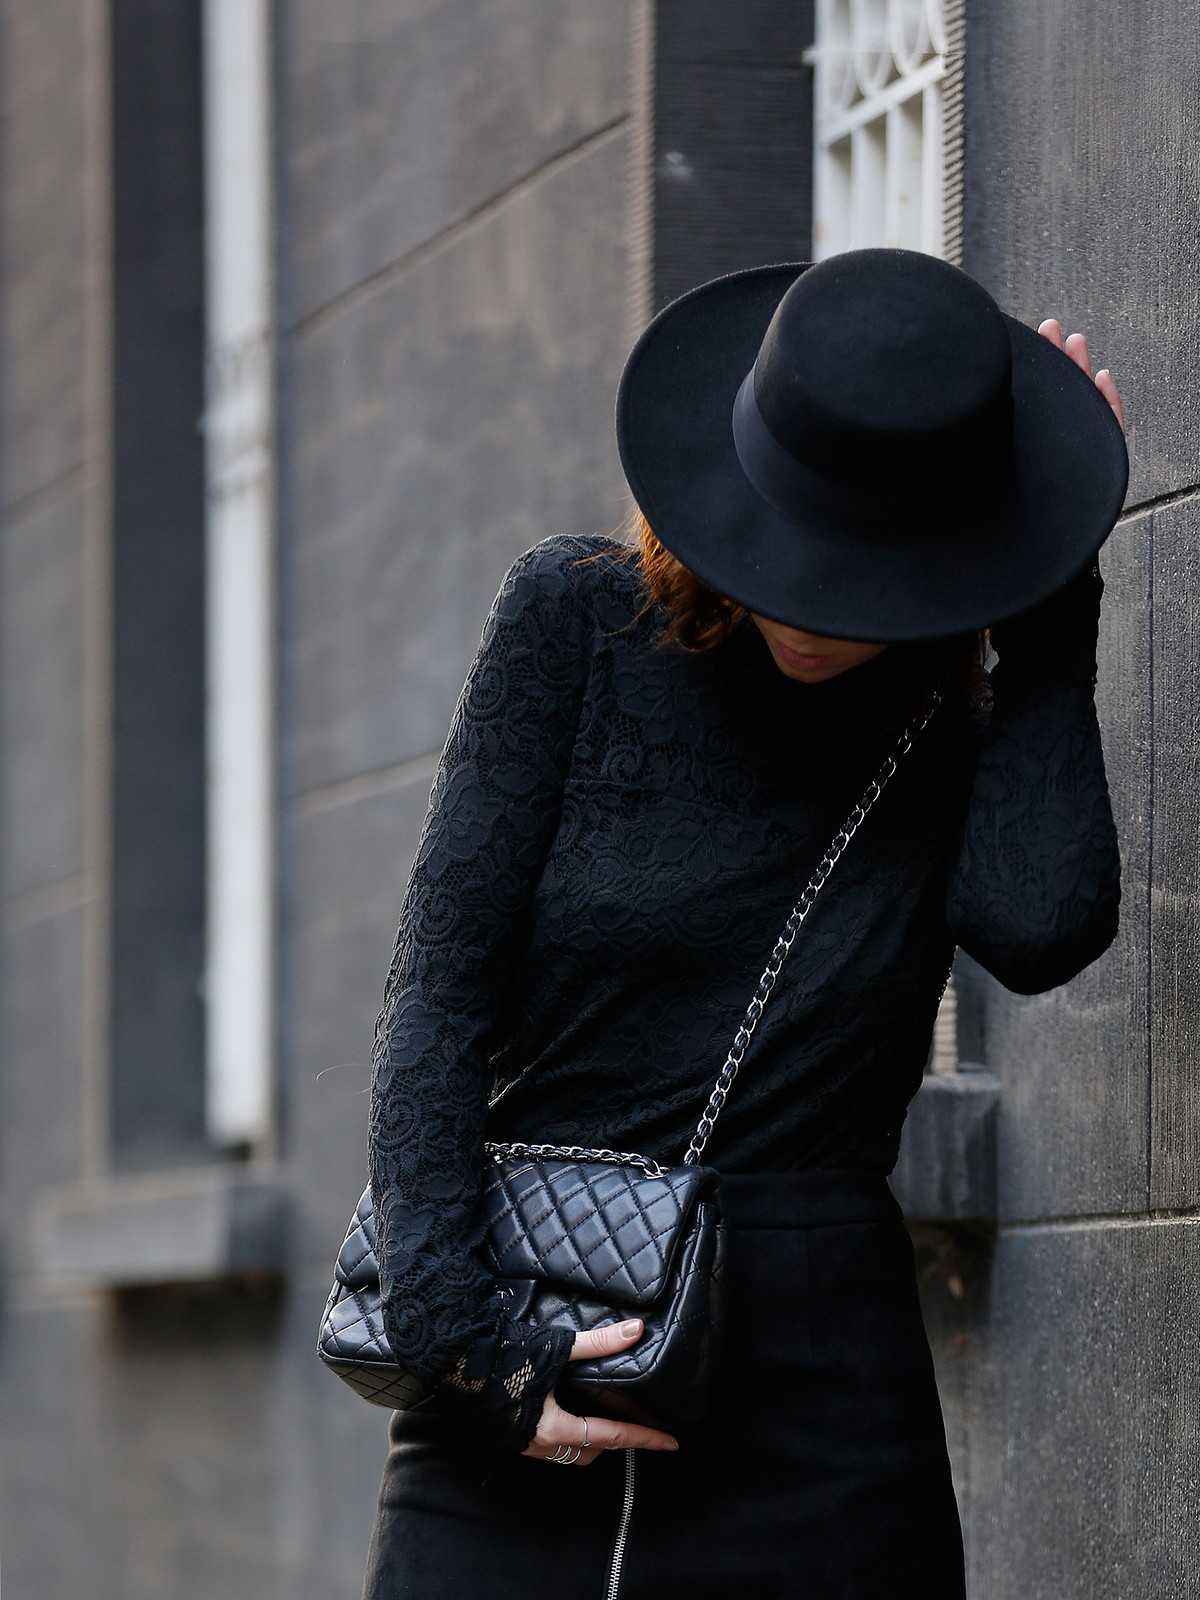 VILA lace layering black allblack hat spanish style dark romance fishnet tights chanel classic luxury bag fashionblogger ricarda schernus cats & dogs modeblog düsseldorf berlin minimal edgy cool styling lookbook ootd 1